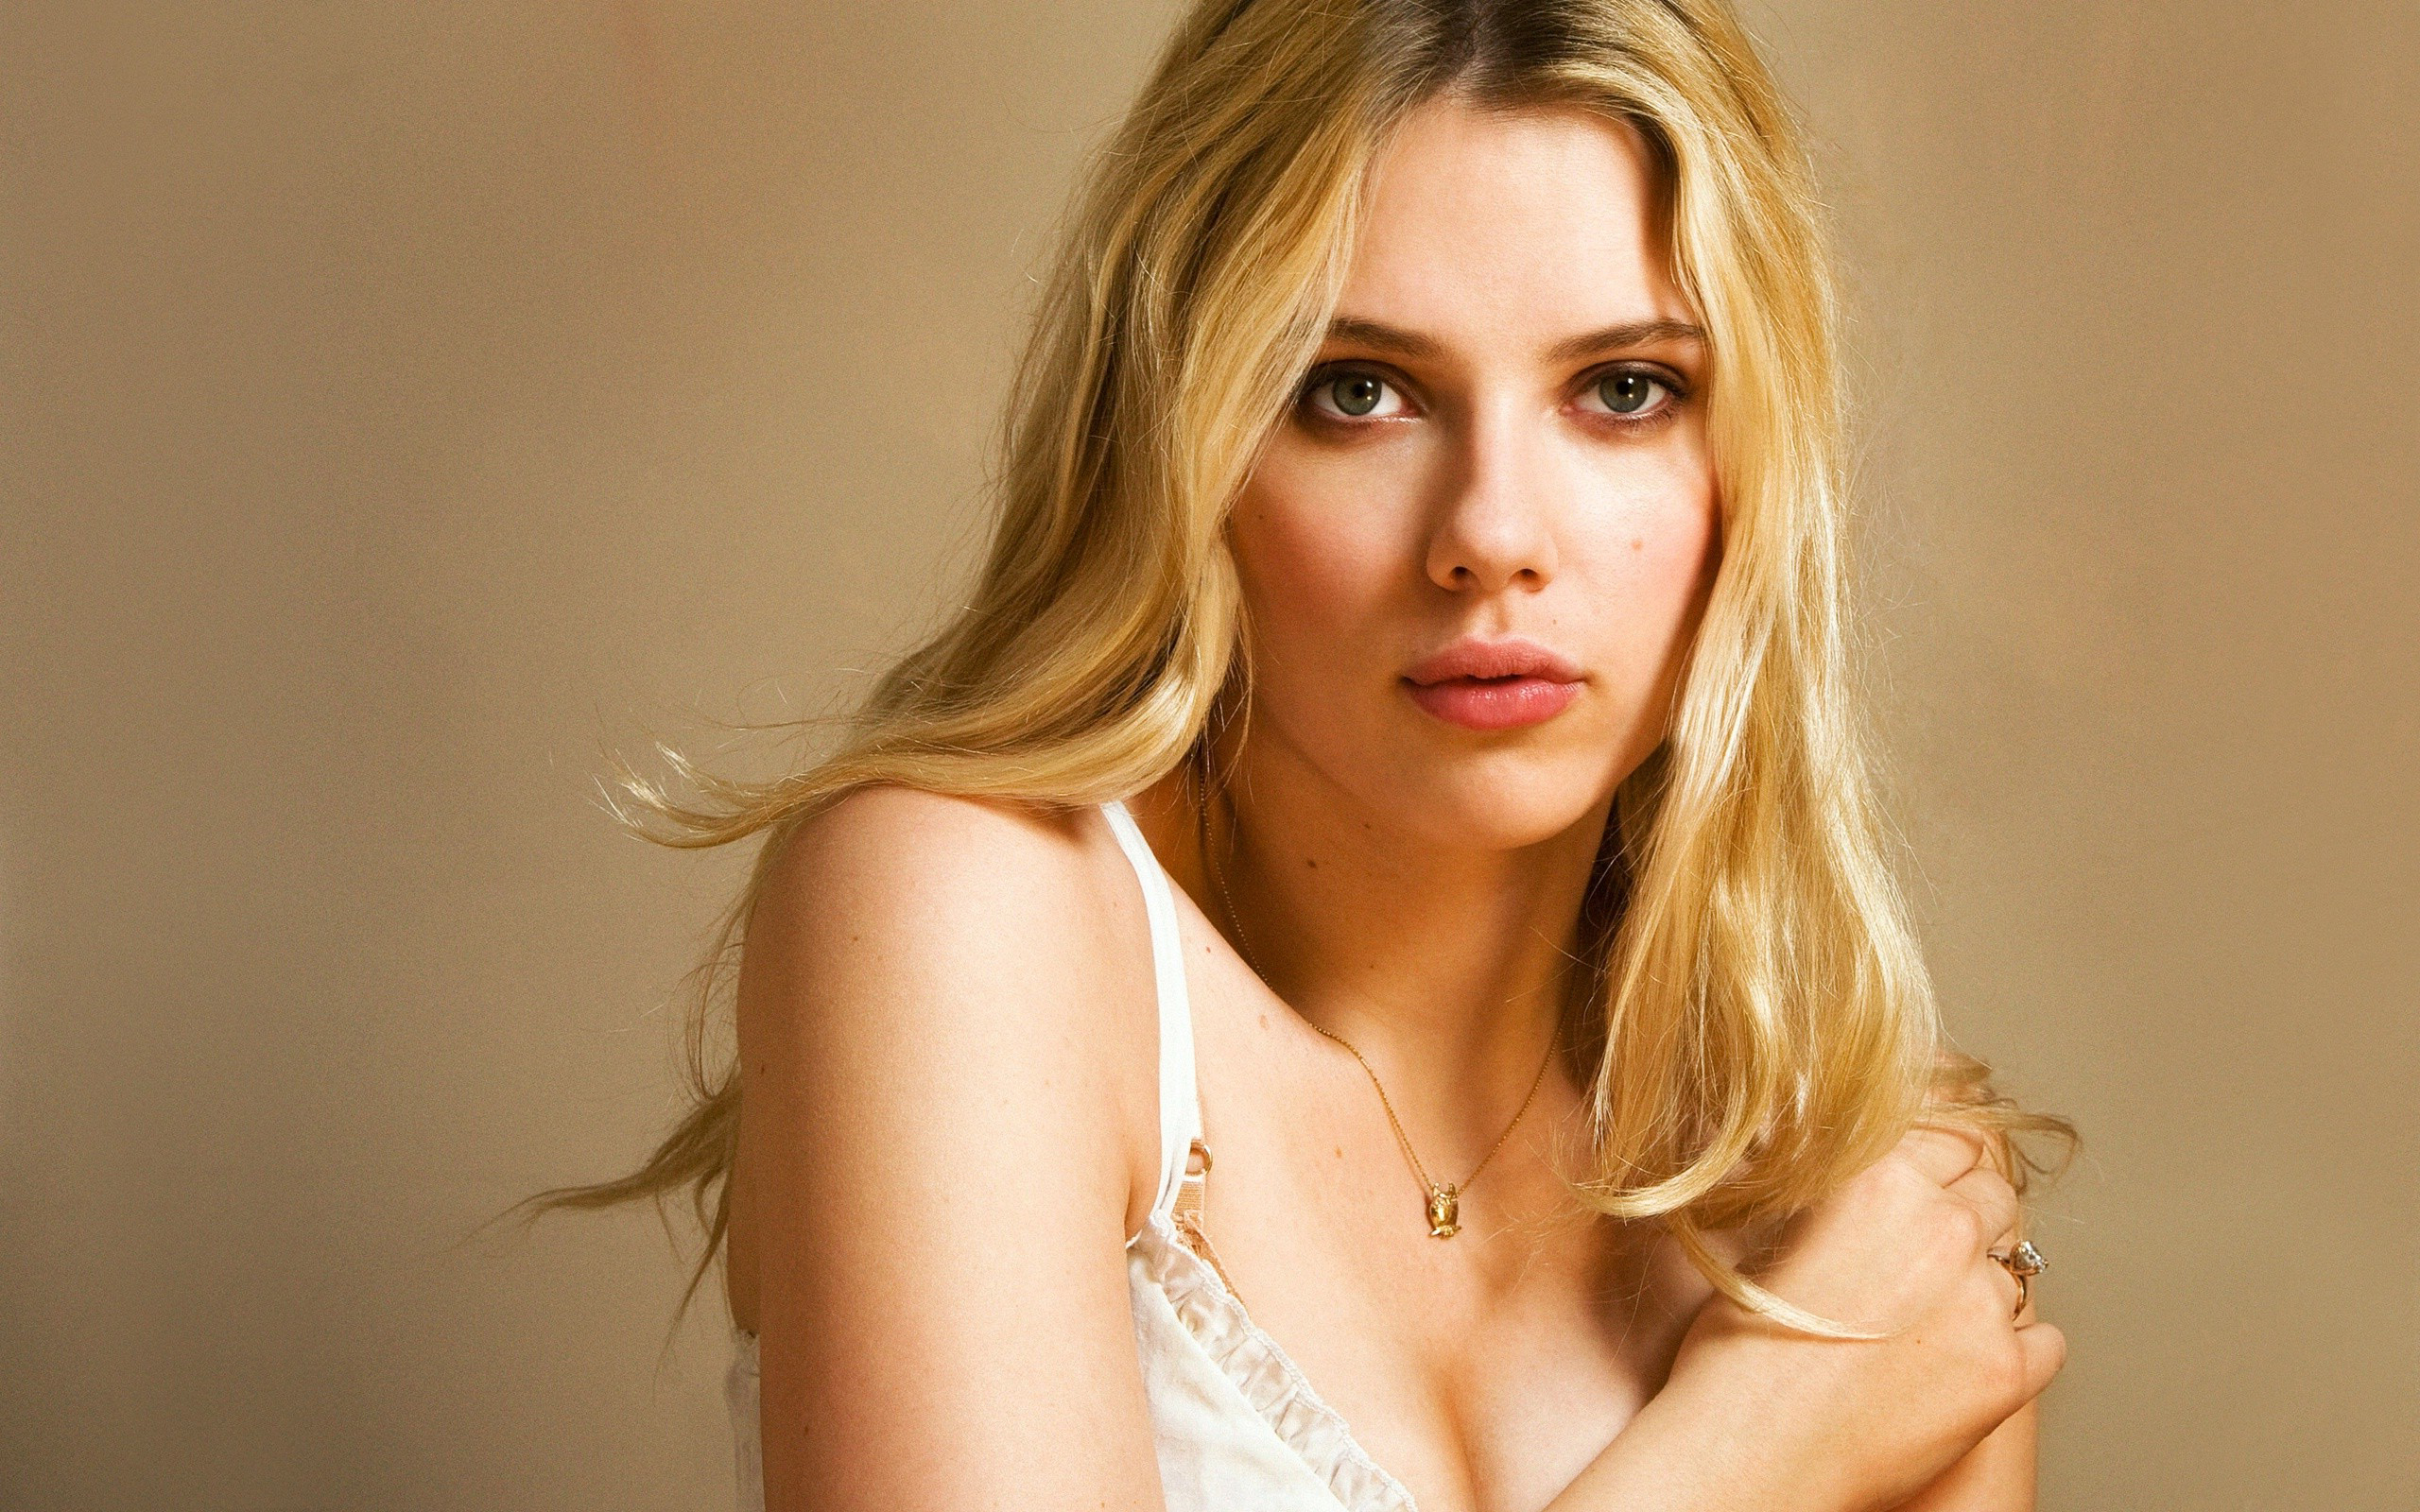 Scarlett Johansson Wallpaper: Scarlett Johansson HD Wallpapers For Desktop Download